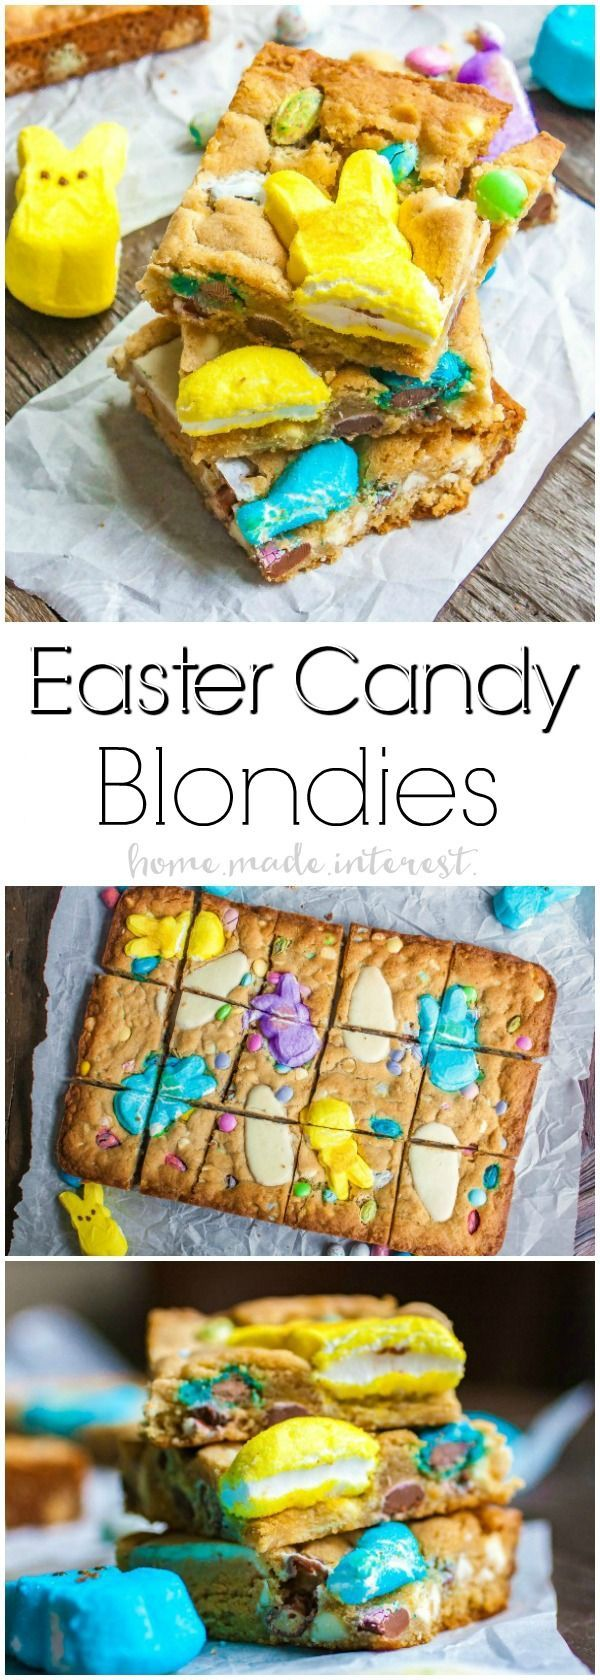 Easter Candy Blondies | Looking for something to do with all of that leftover Easter candy? This easy blondie recipe uses Peeps along with all of your other favorite Easter candy to make Easter Candy Blondies.